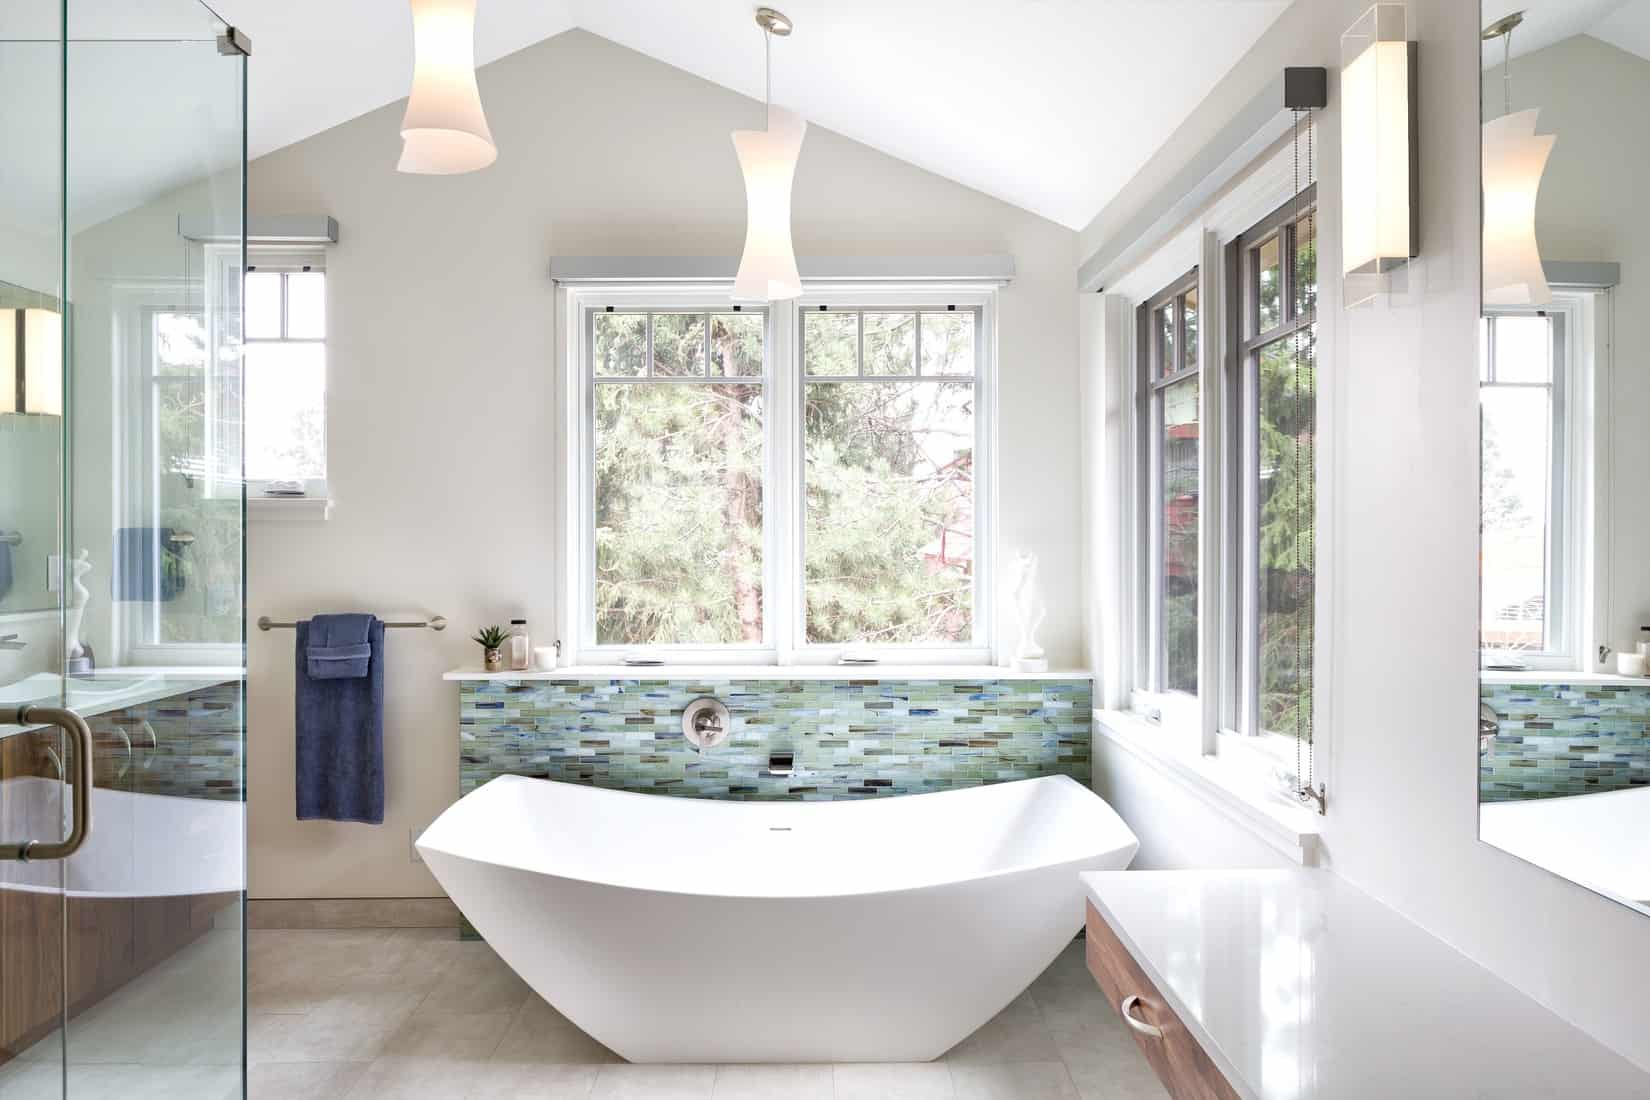 Devil's Thumb Boulder Remodel - Master Bathroom Soaking Tub